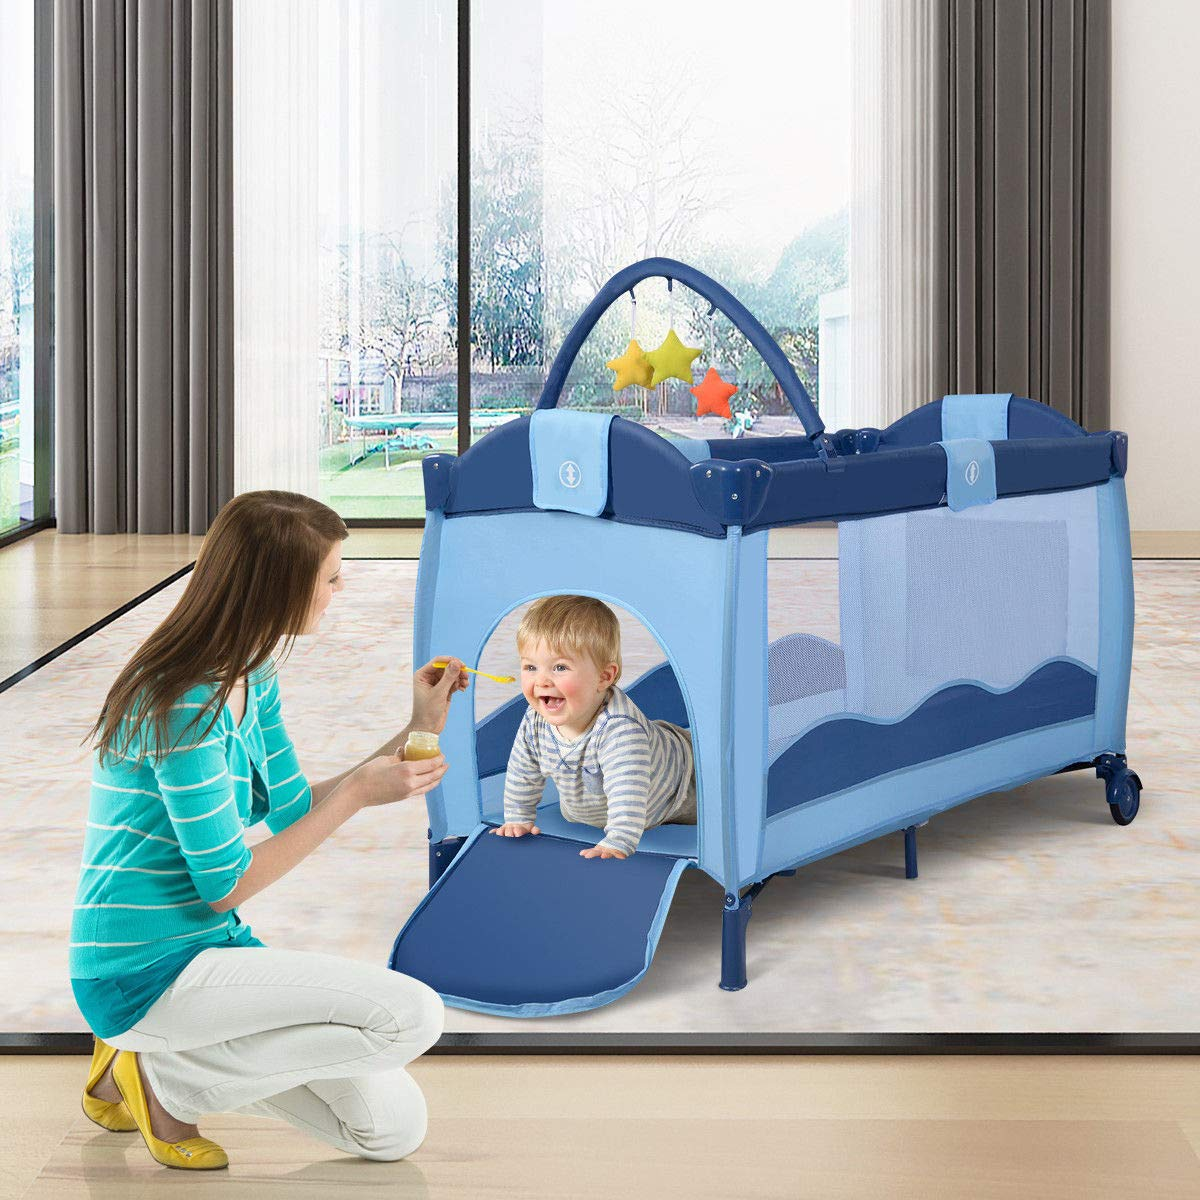 Toddler Baby Crib Playard Pack Playpen Bassinet Travel Infant Bed Portable Foldable by WealthyPlaza (Image #3)